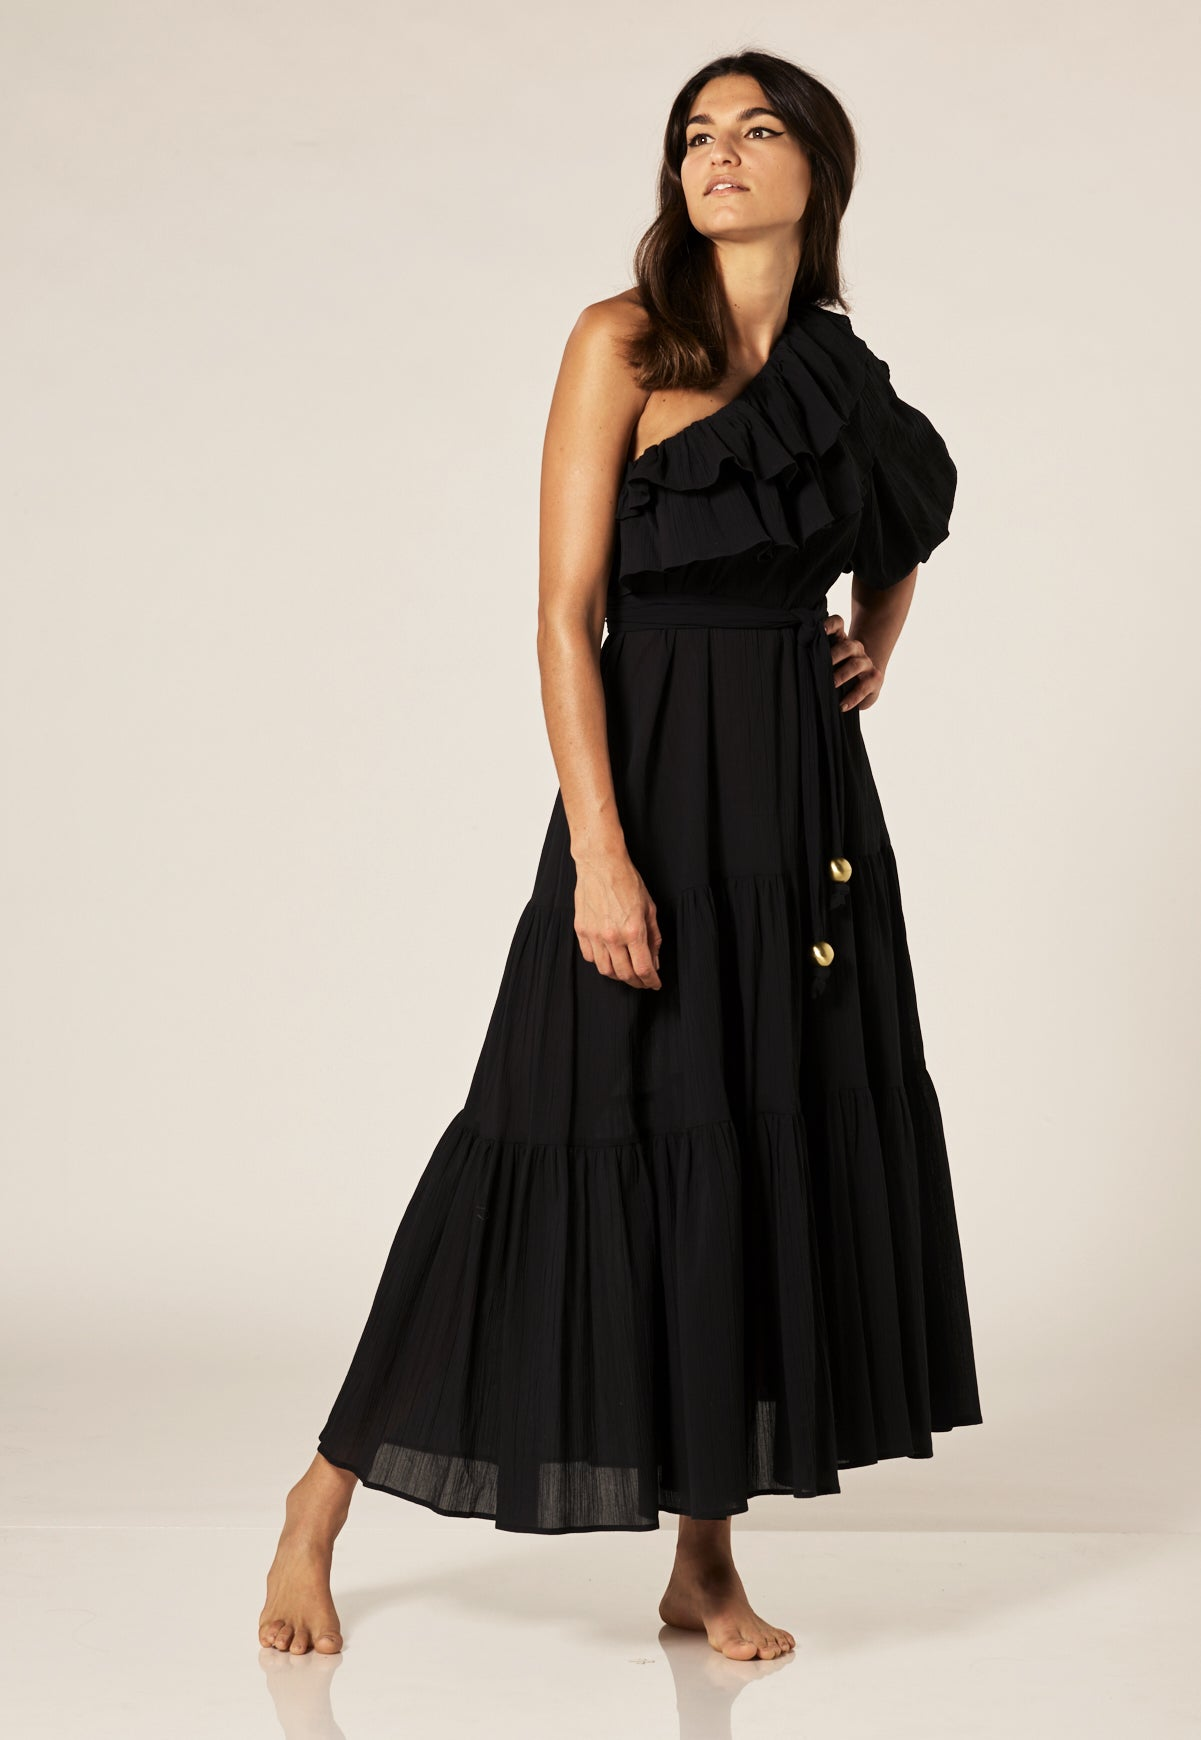 ARDEN BLACK COTTON DRESS